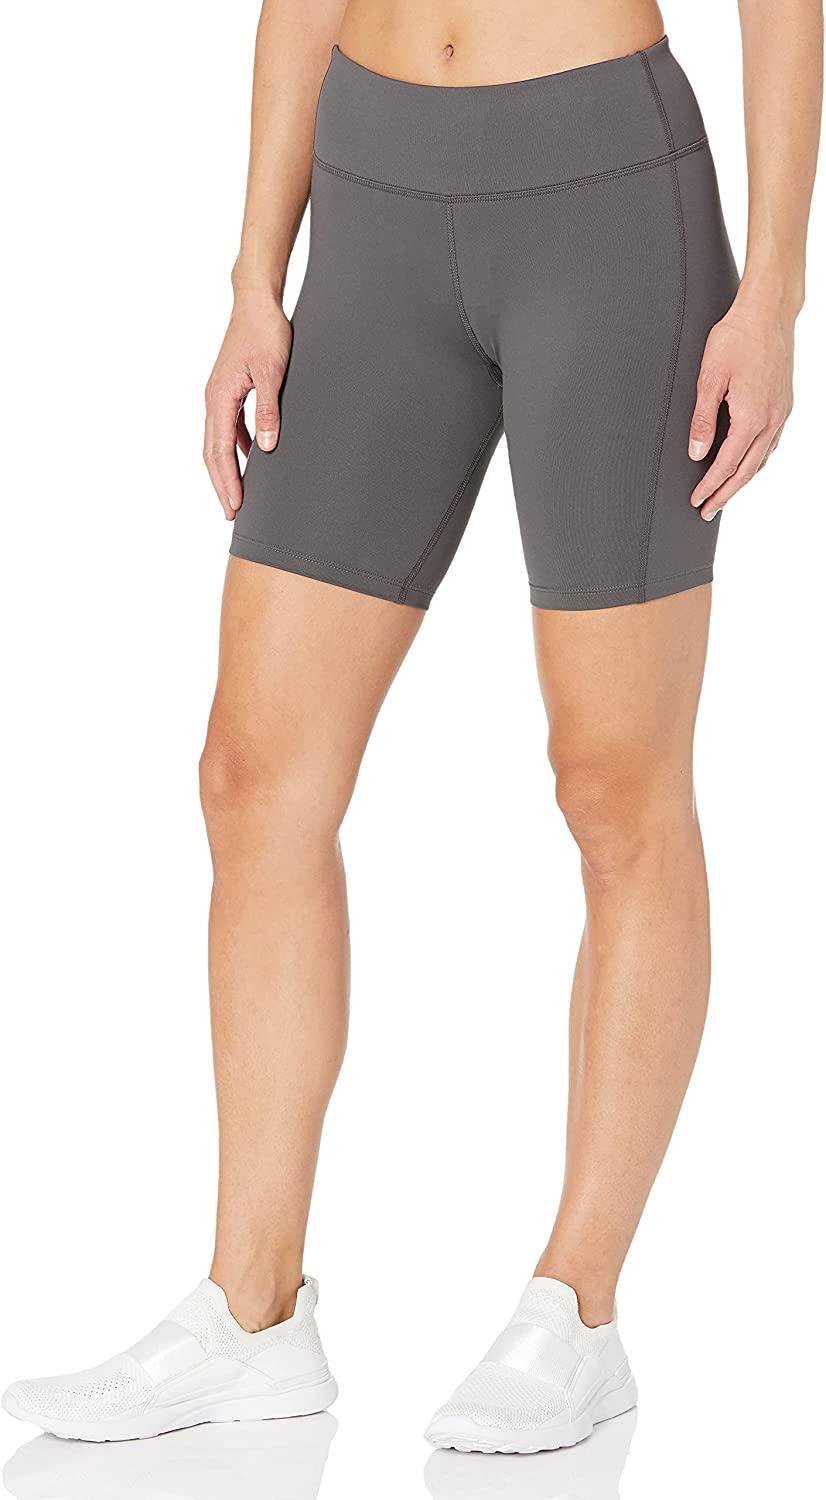 New in Box Small//Medium Tommie Copper Sport Compression Genou Manches Manches 1